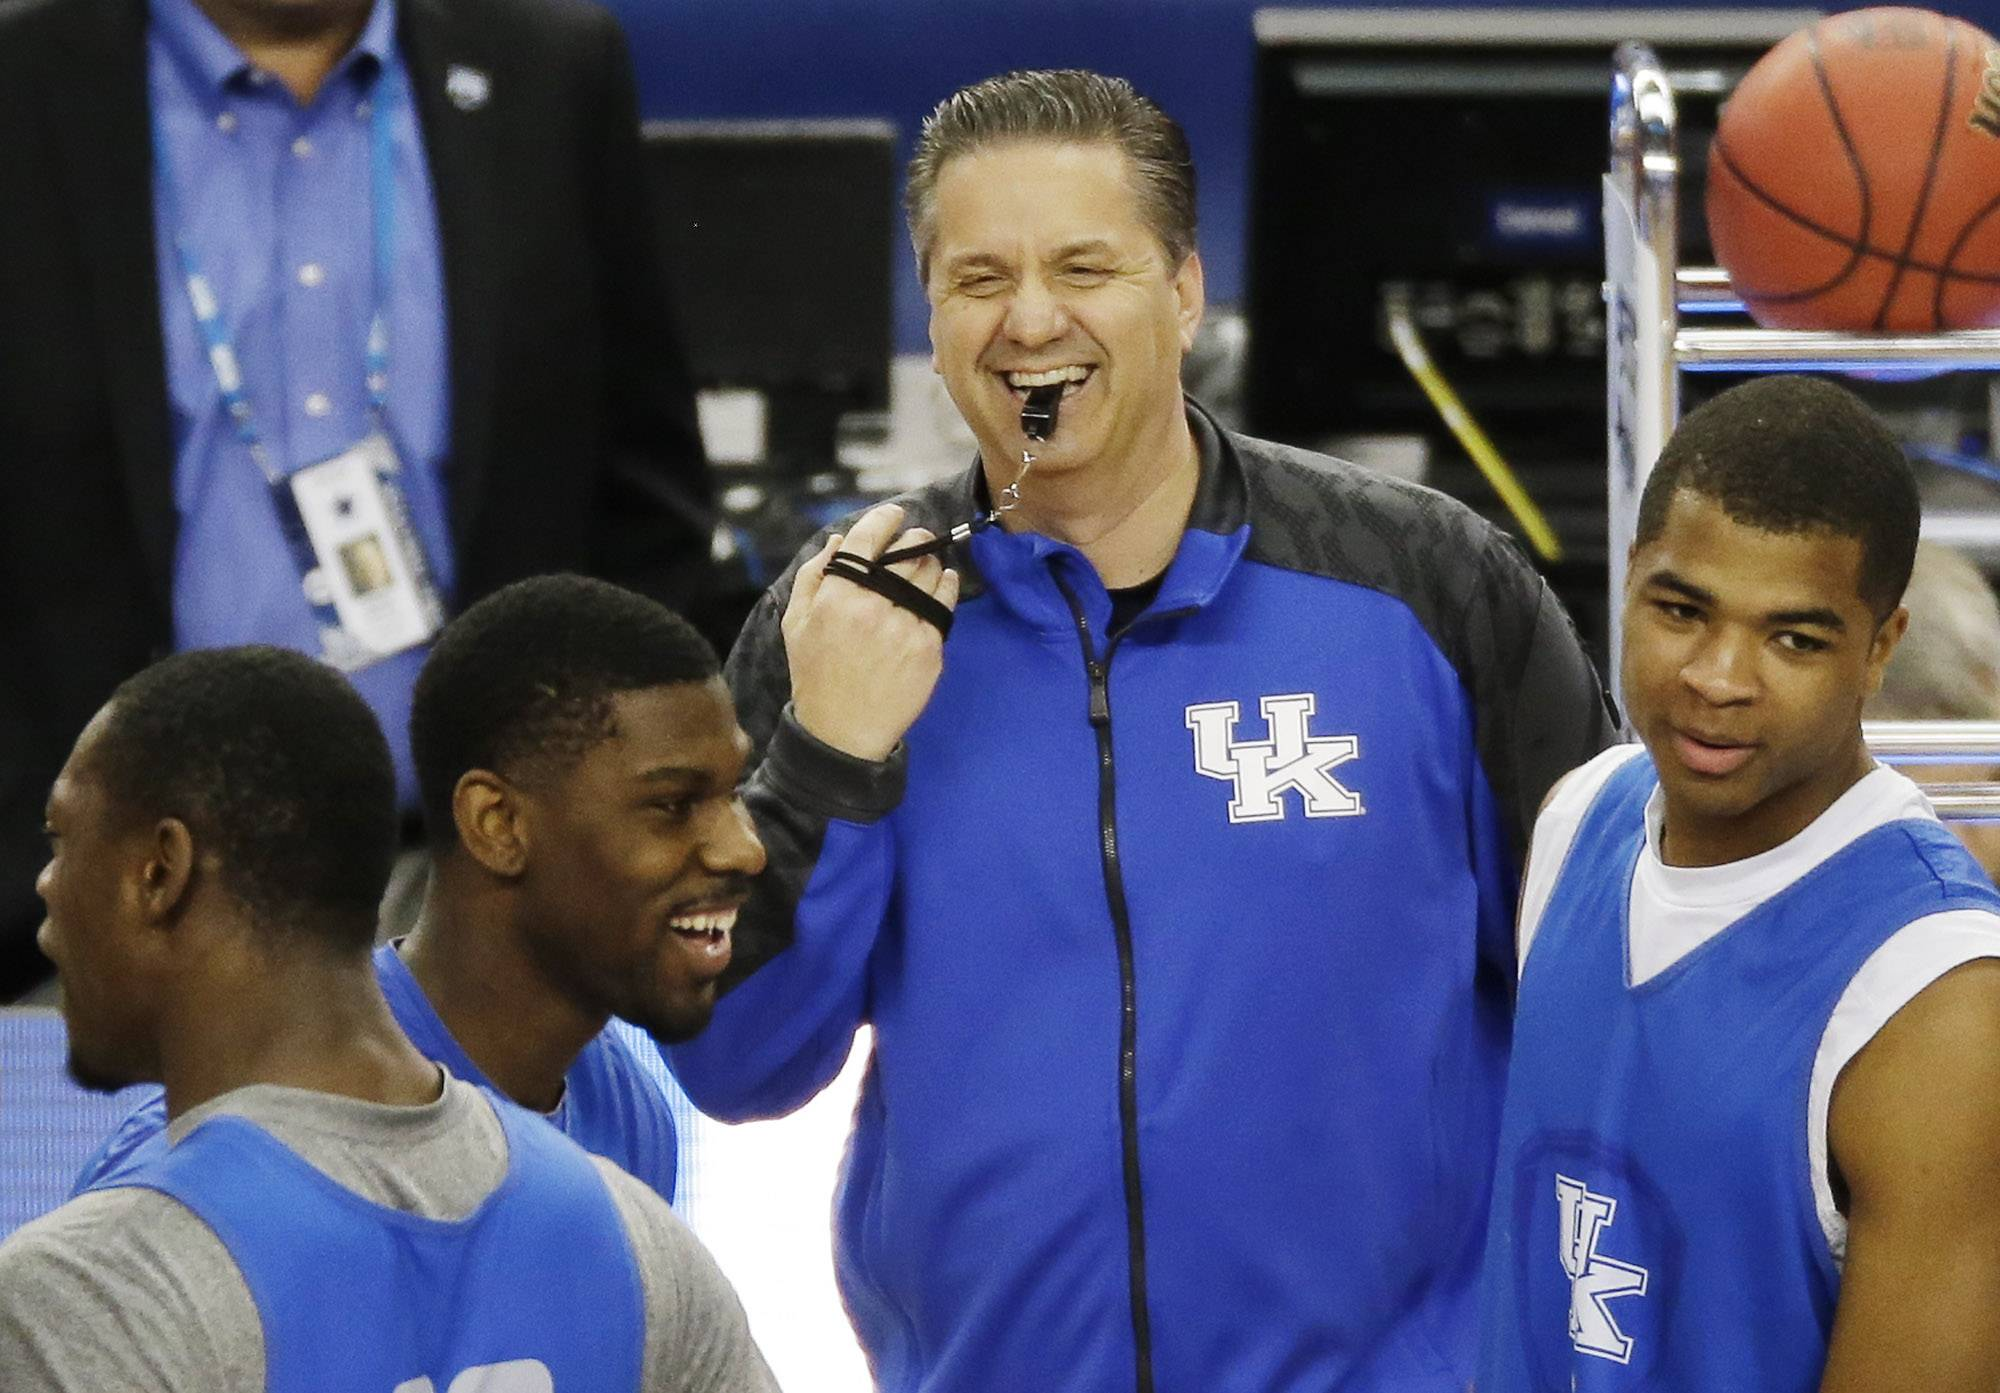 Kentucky head coach John Calipari shares a light moment with the team during practice Friday in Dallas.